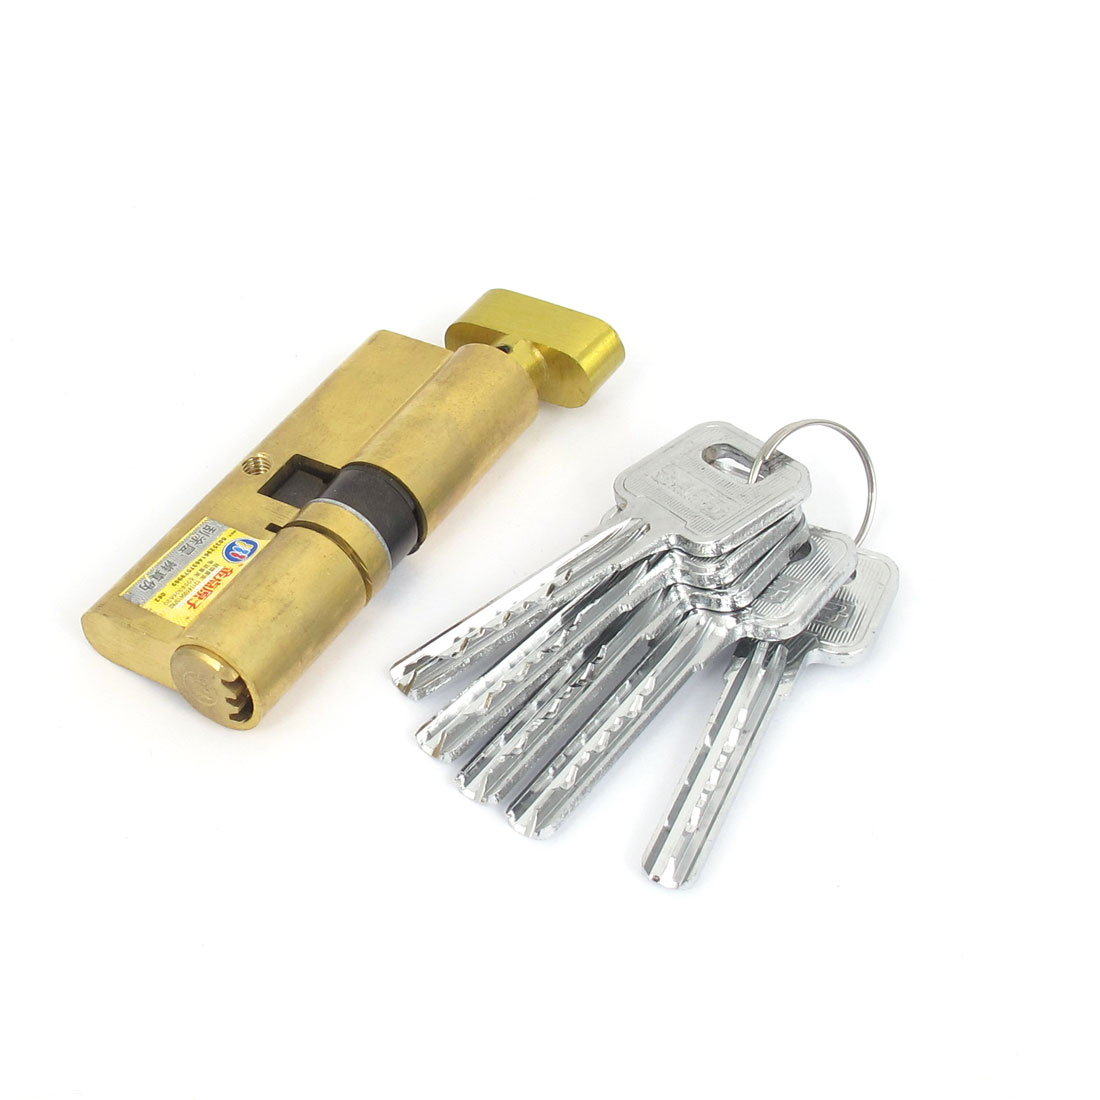 Gold Tone Metal Anti-theft Security Door Lock Locking Core for Home Office